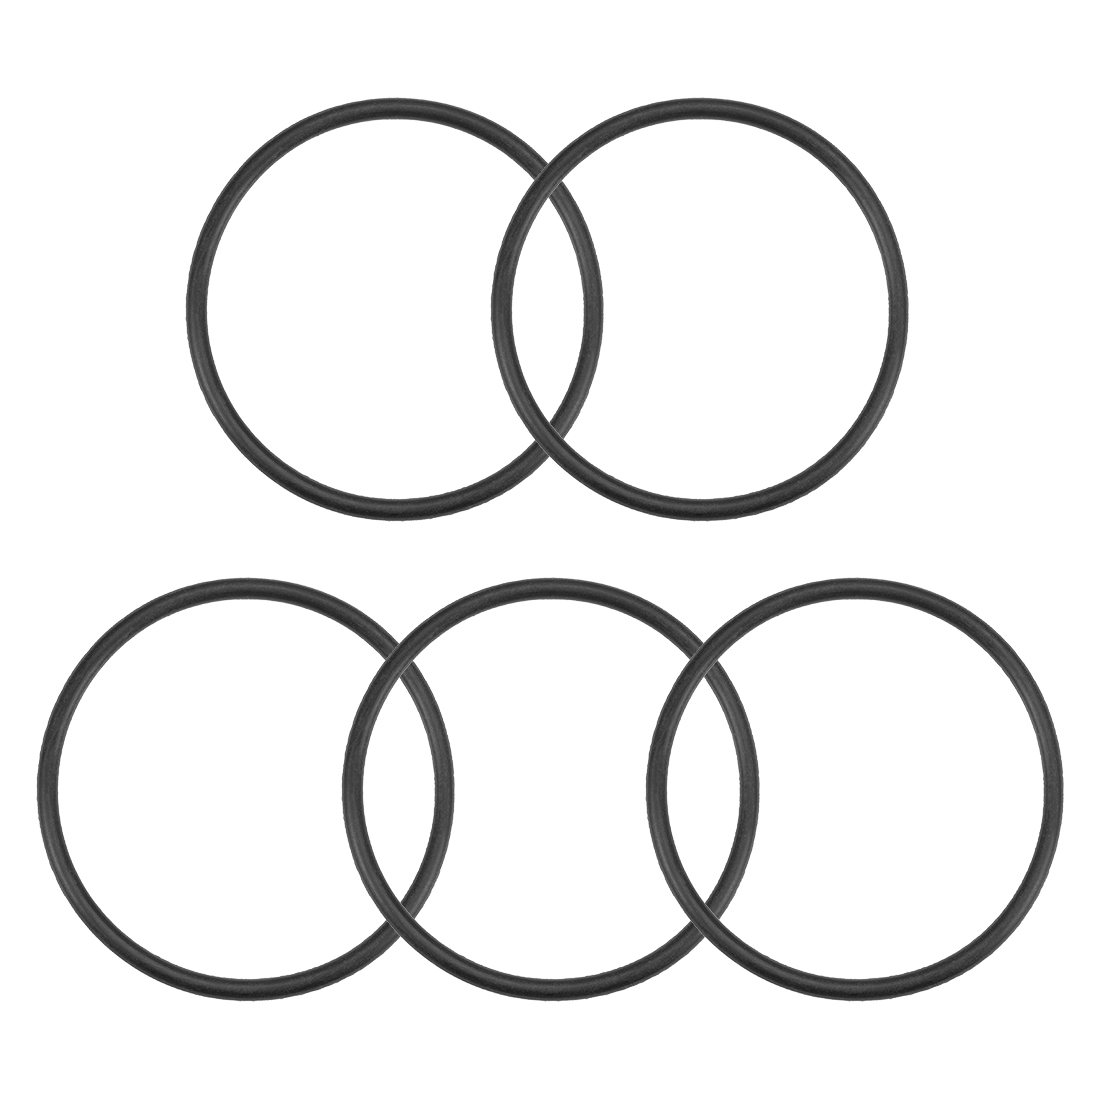 O-Rings Nitrile Rubber 45mm x 50.3mm x 2.65mm Round Seal Gasket 5 Pcs